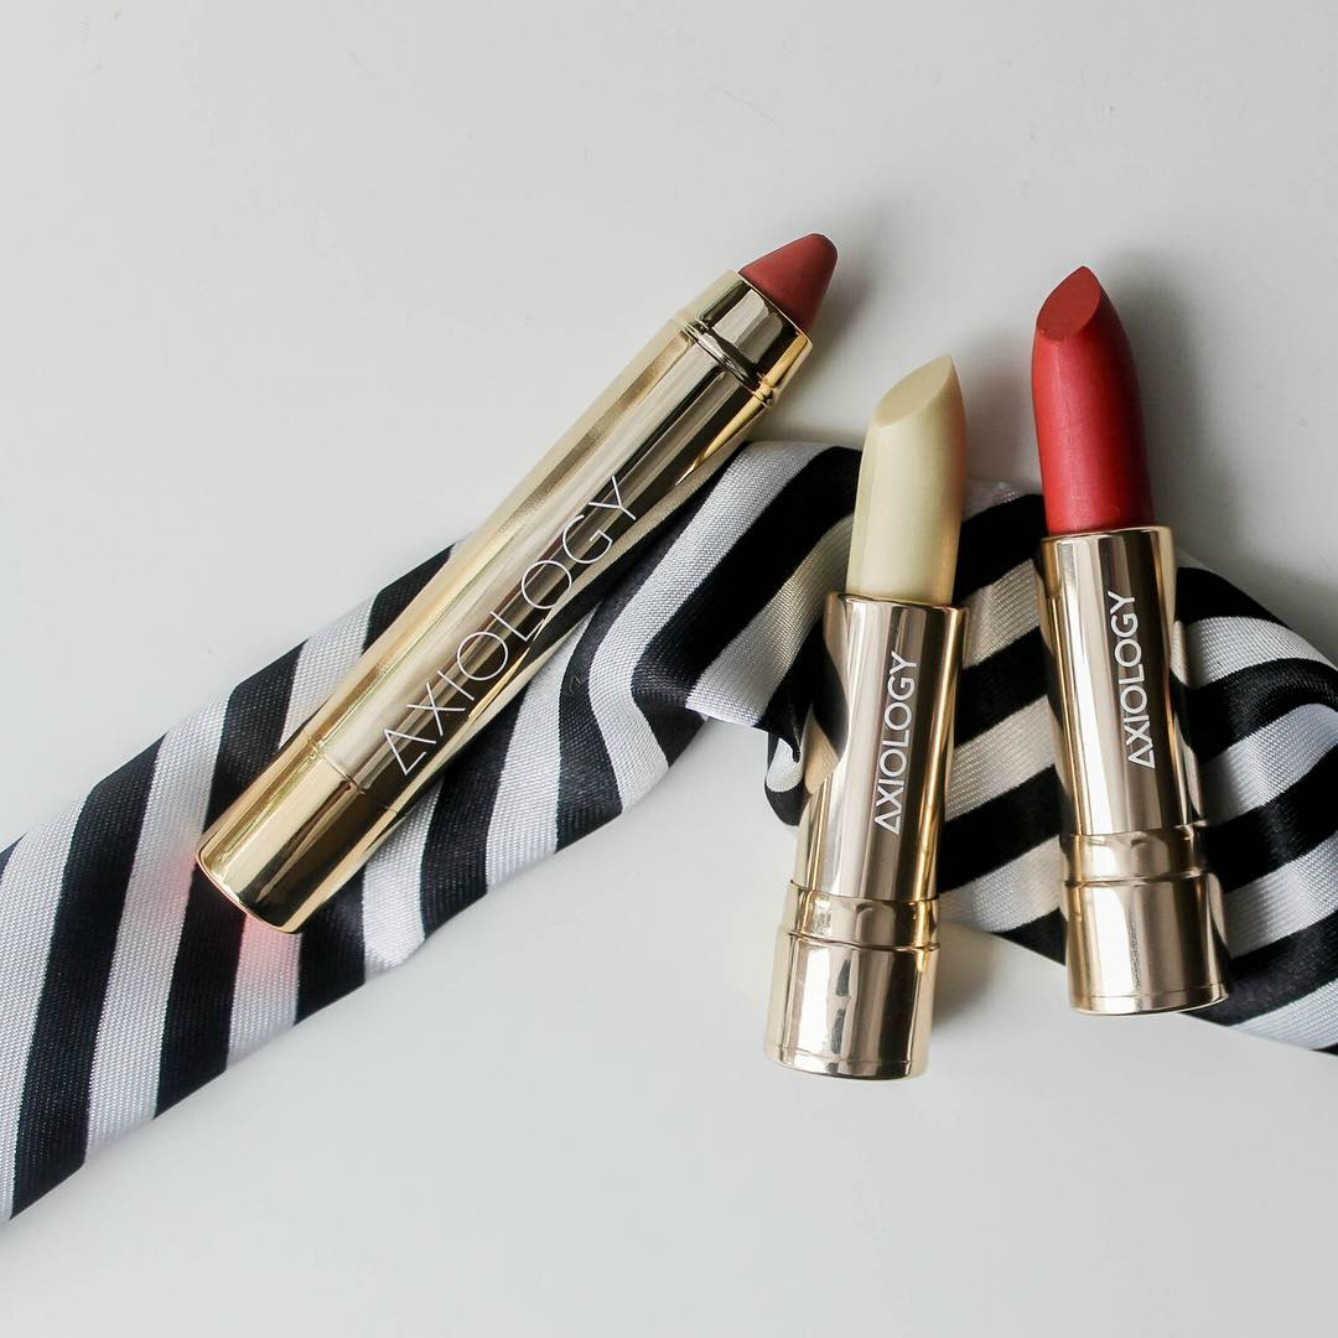 This Natural Lipstick Brand Just Landed at Sephora